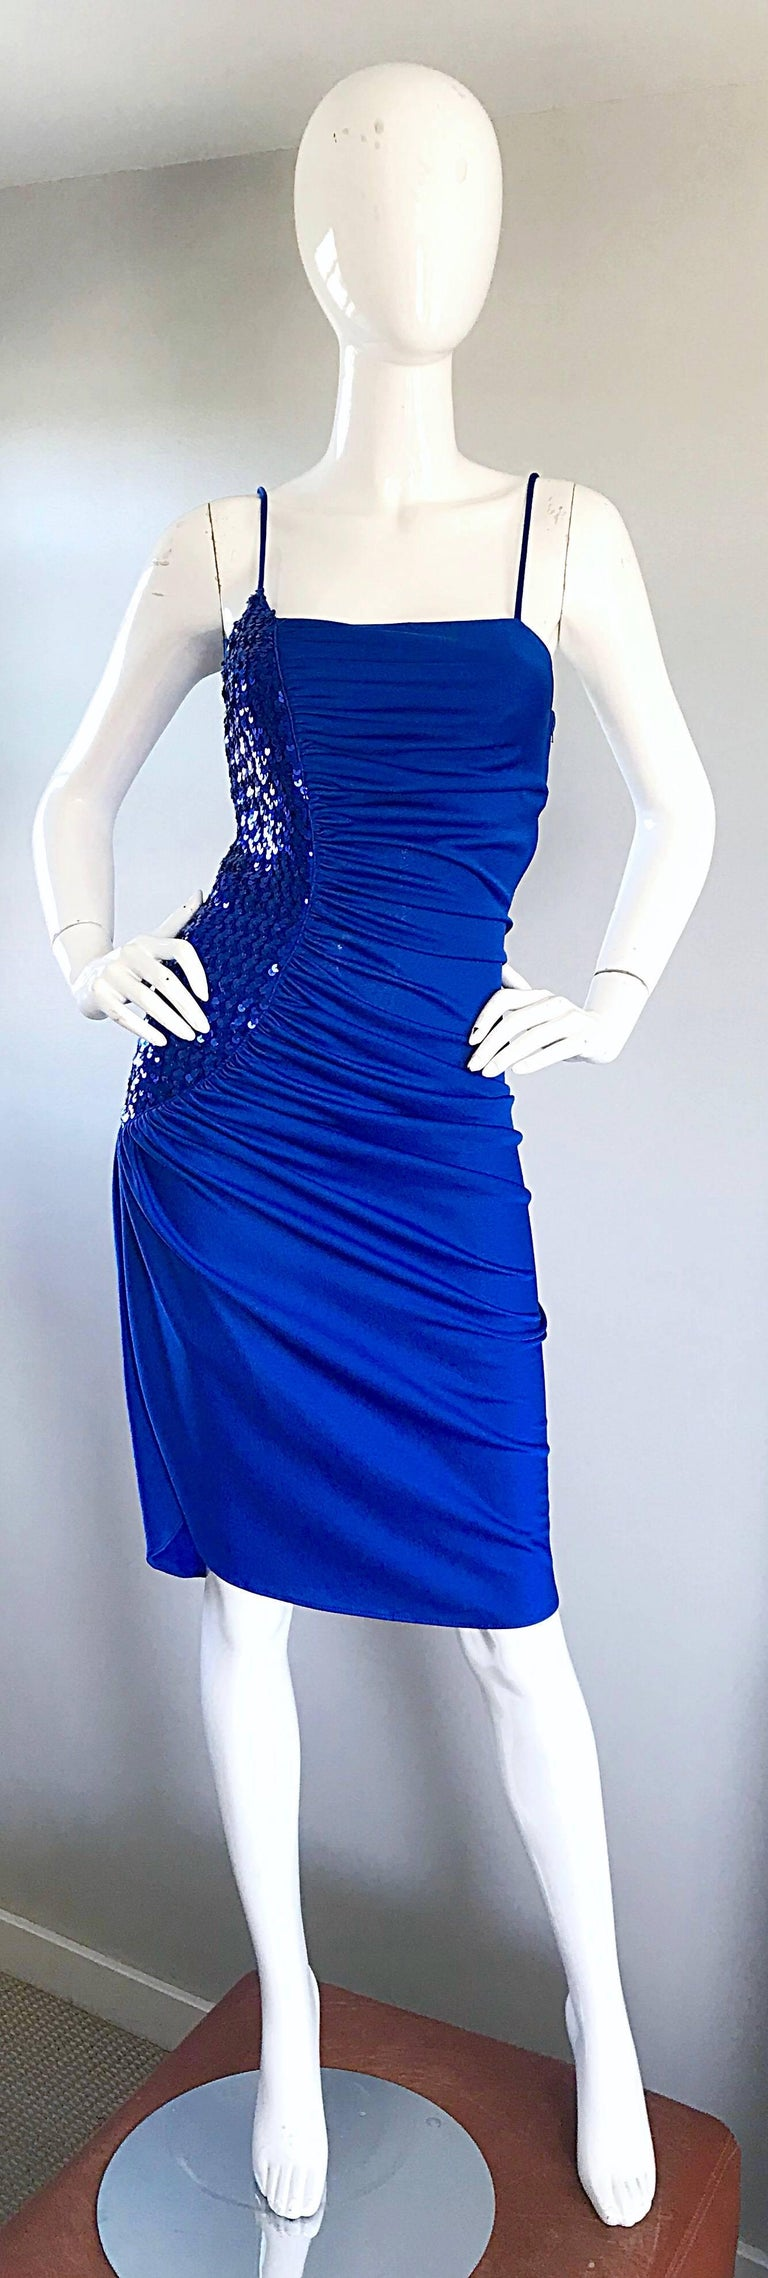 Sexy 1970s SAMIR royal blue jersey and sequined Studio 54 disco dress! Features a slinky jersey fabric with hundreds of hand-sewn sequins on the right side. Hidden zipper up the side. Stretches to fit. Insanely flattering, and a definite head